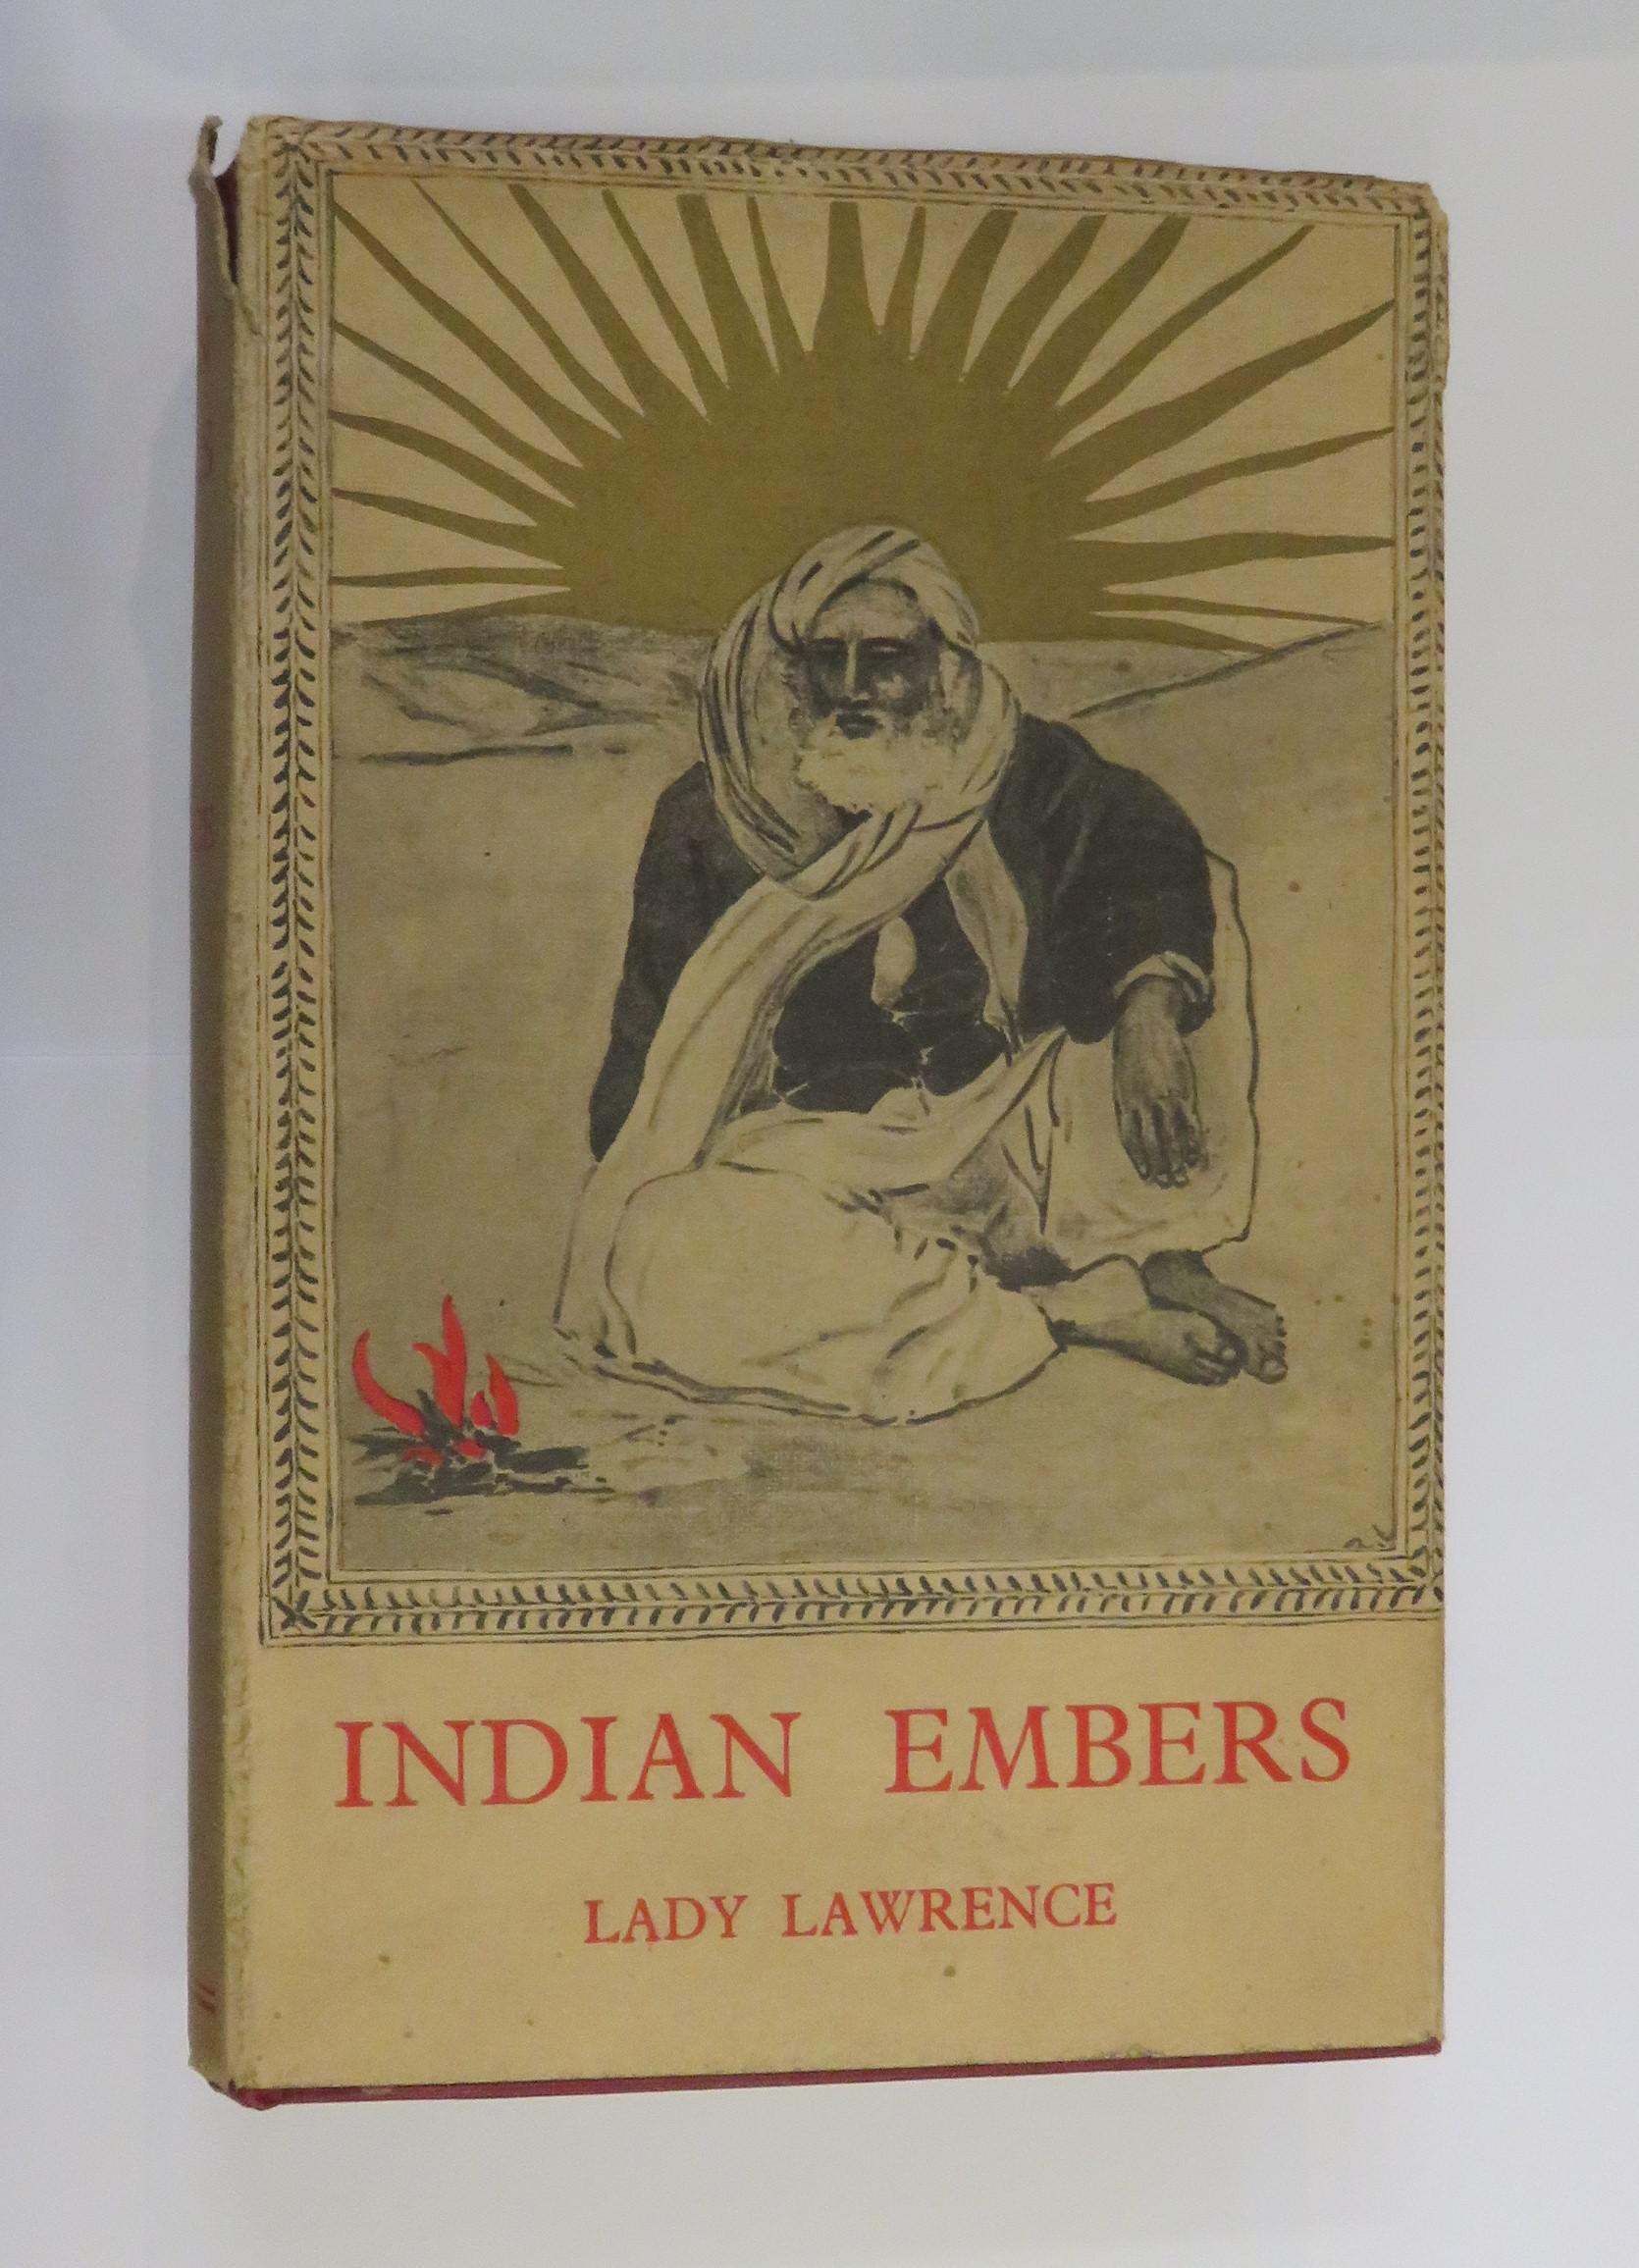 Indian Embers